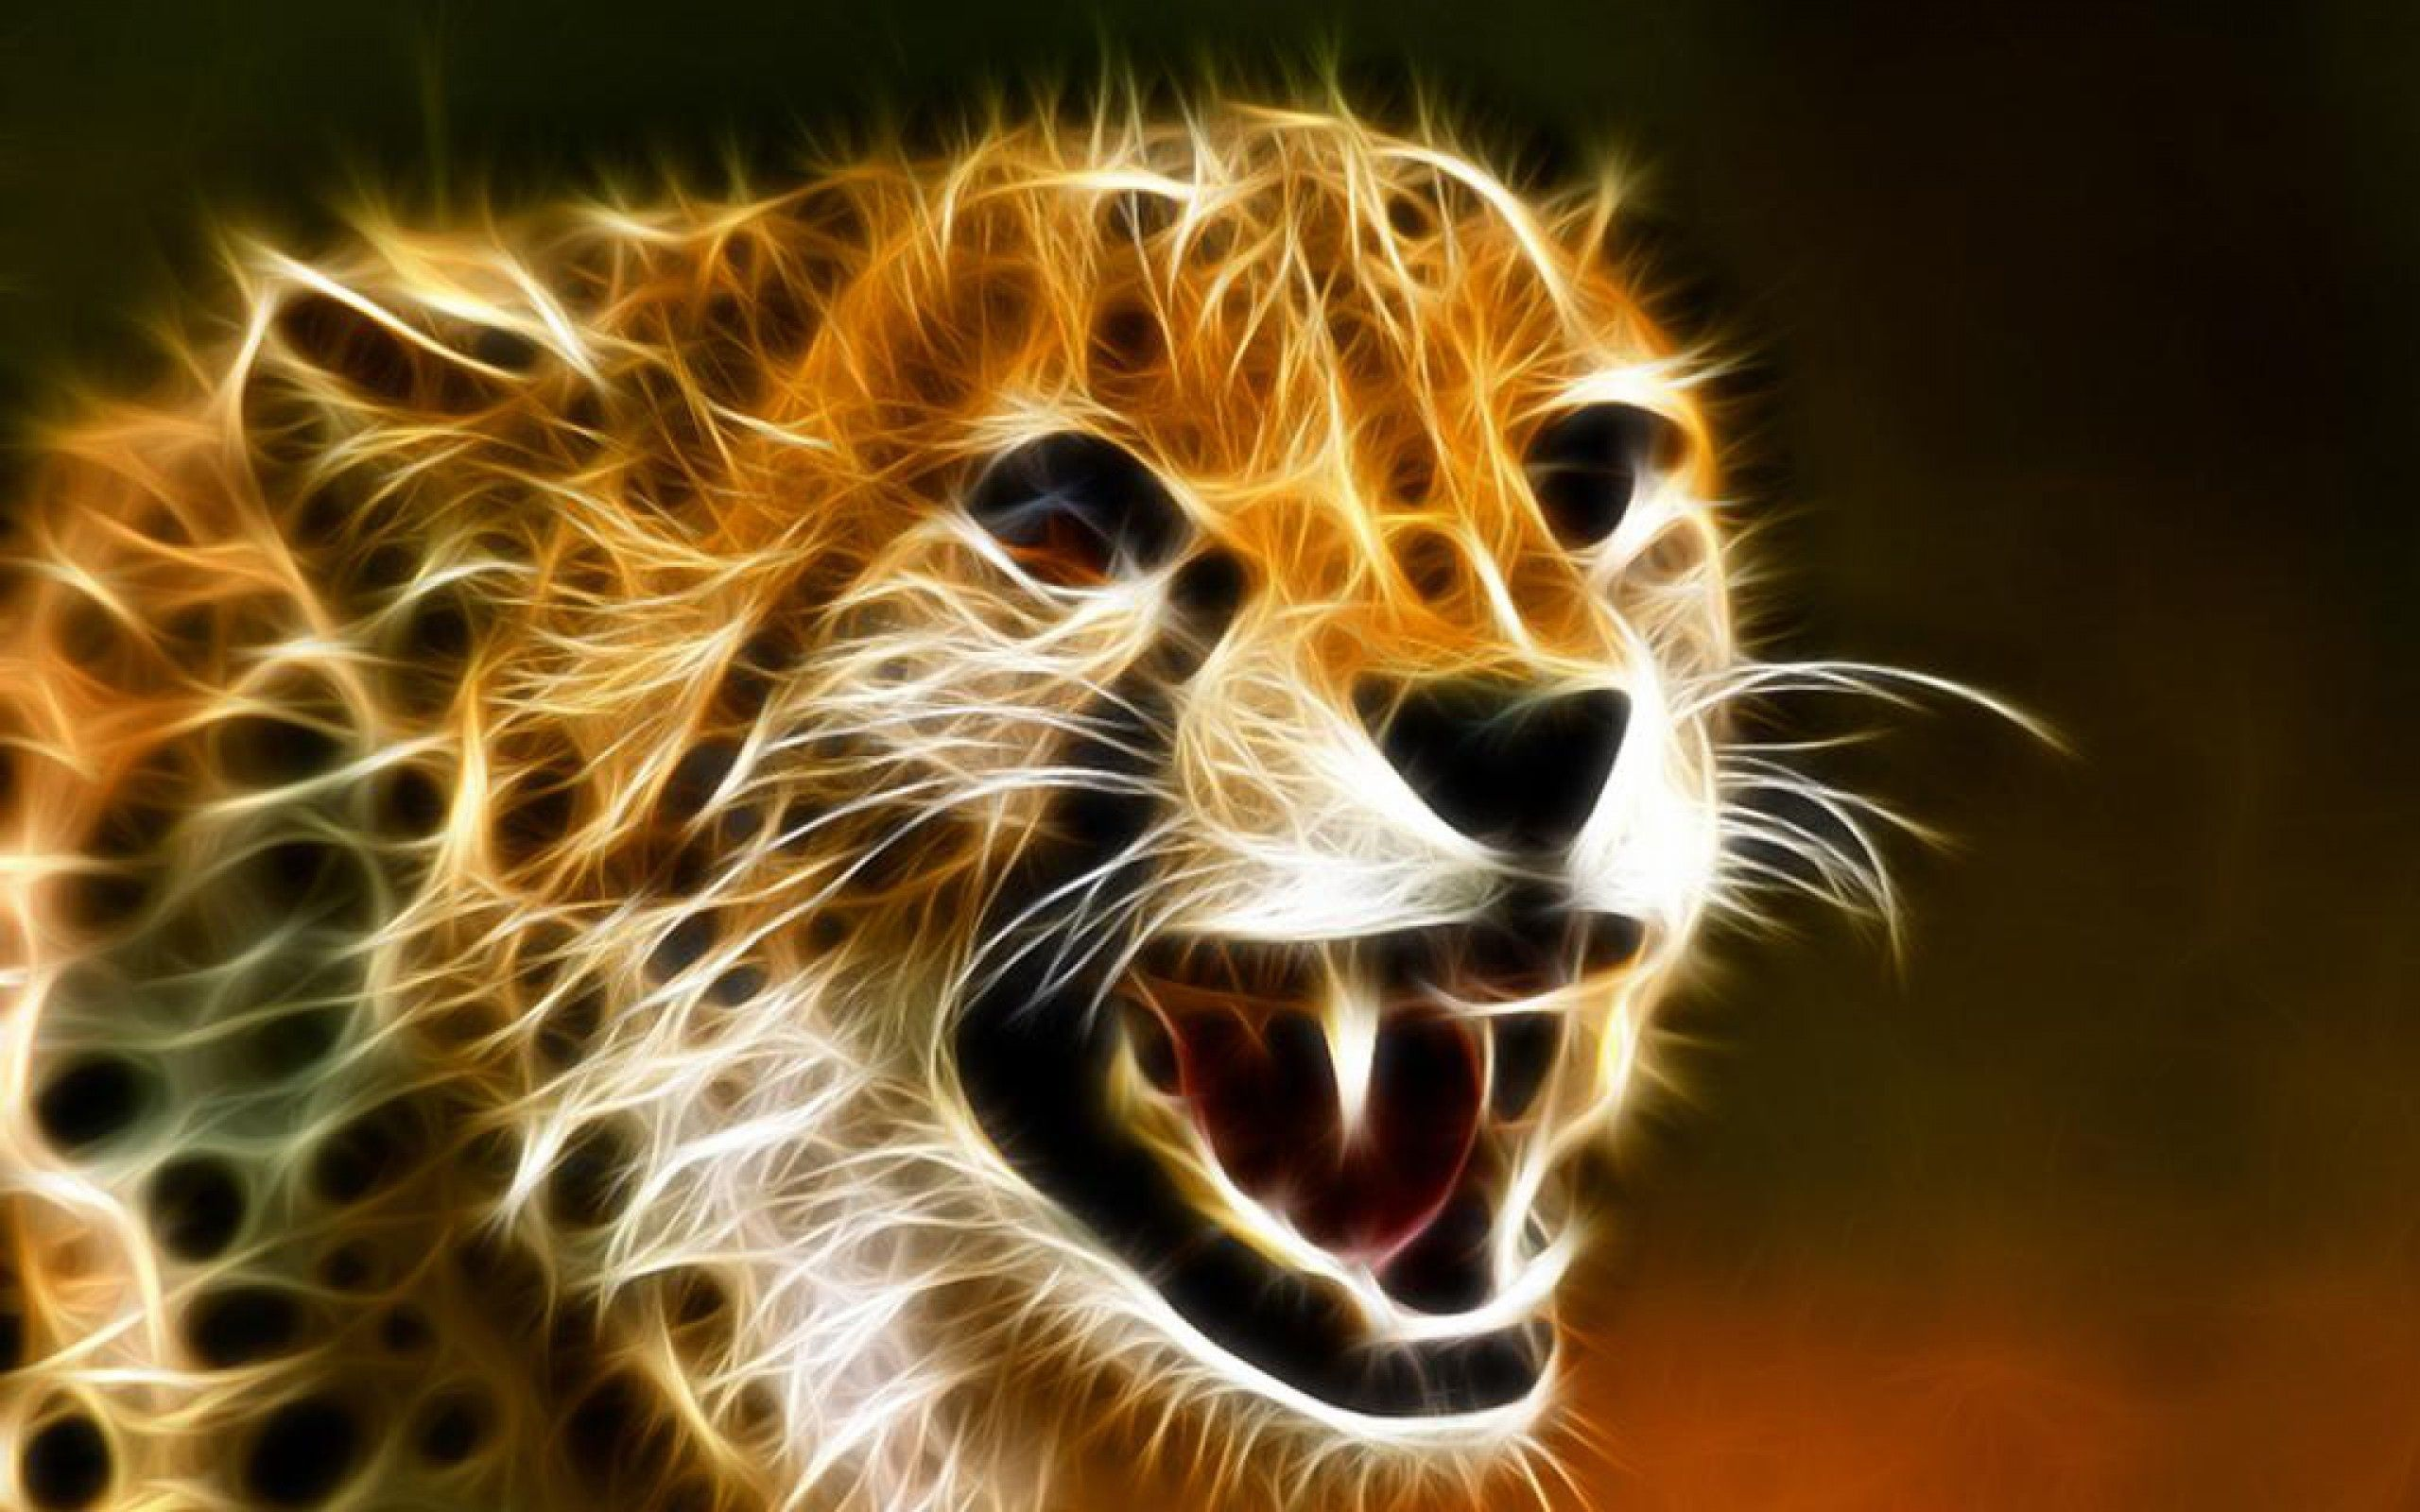 2560x1600 62+ Baby Cheetah Wallpapers on WallpaperPlay